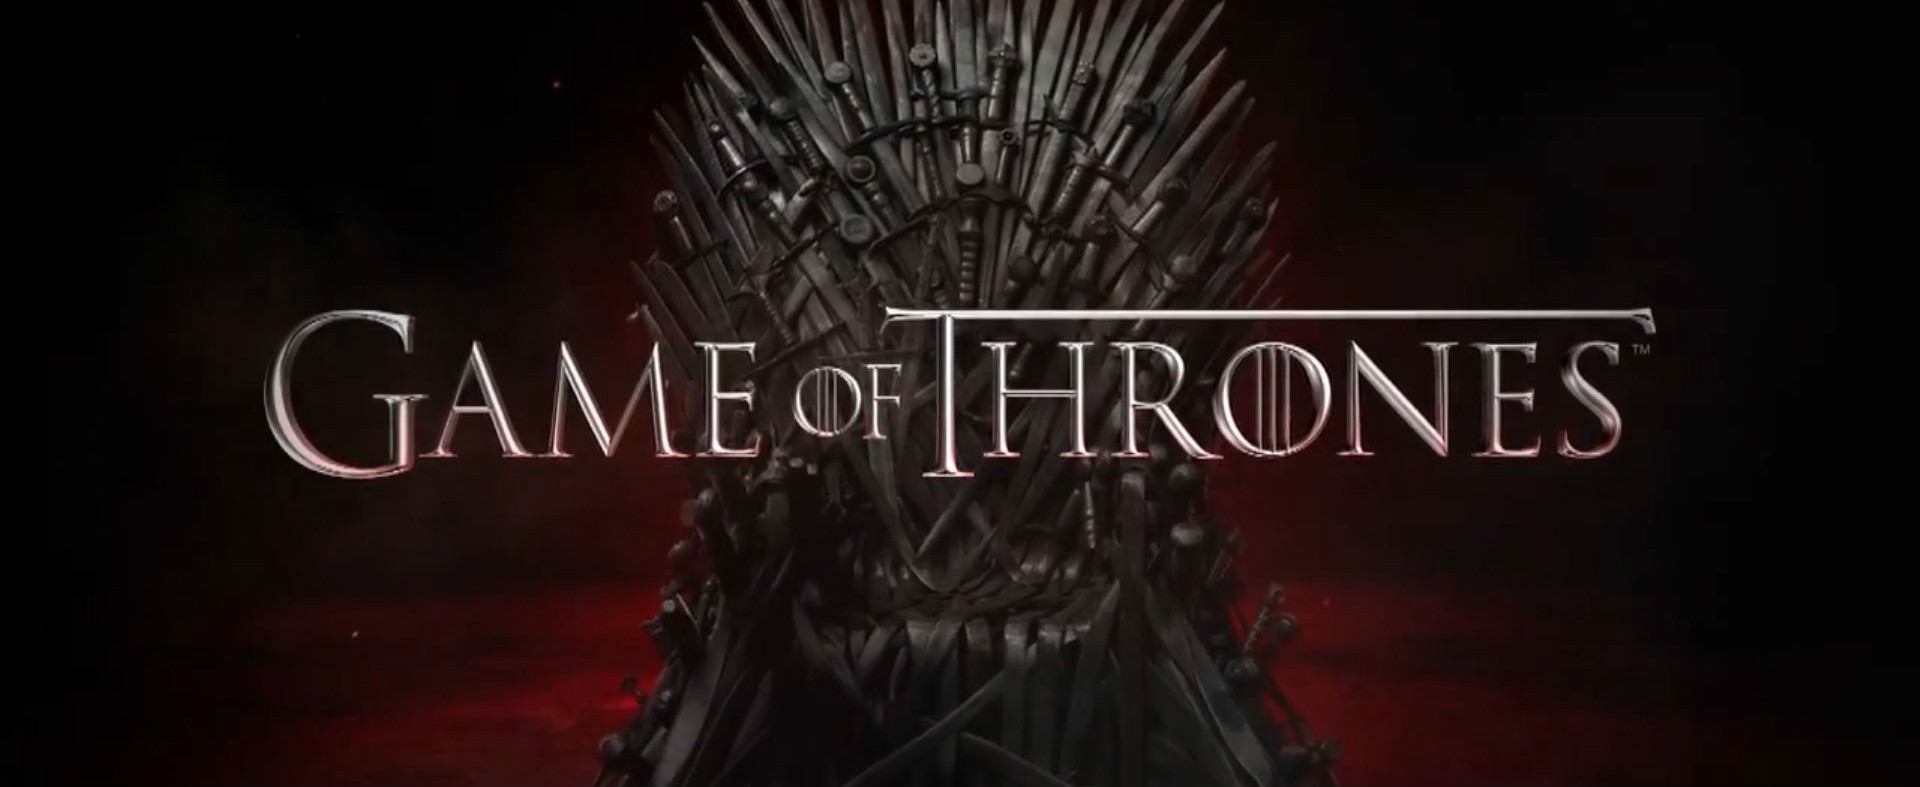 game-of-thrones-logo-2